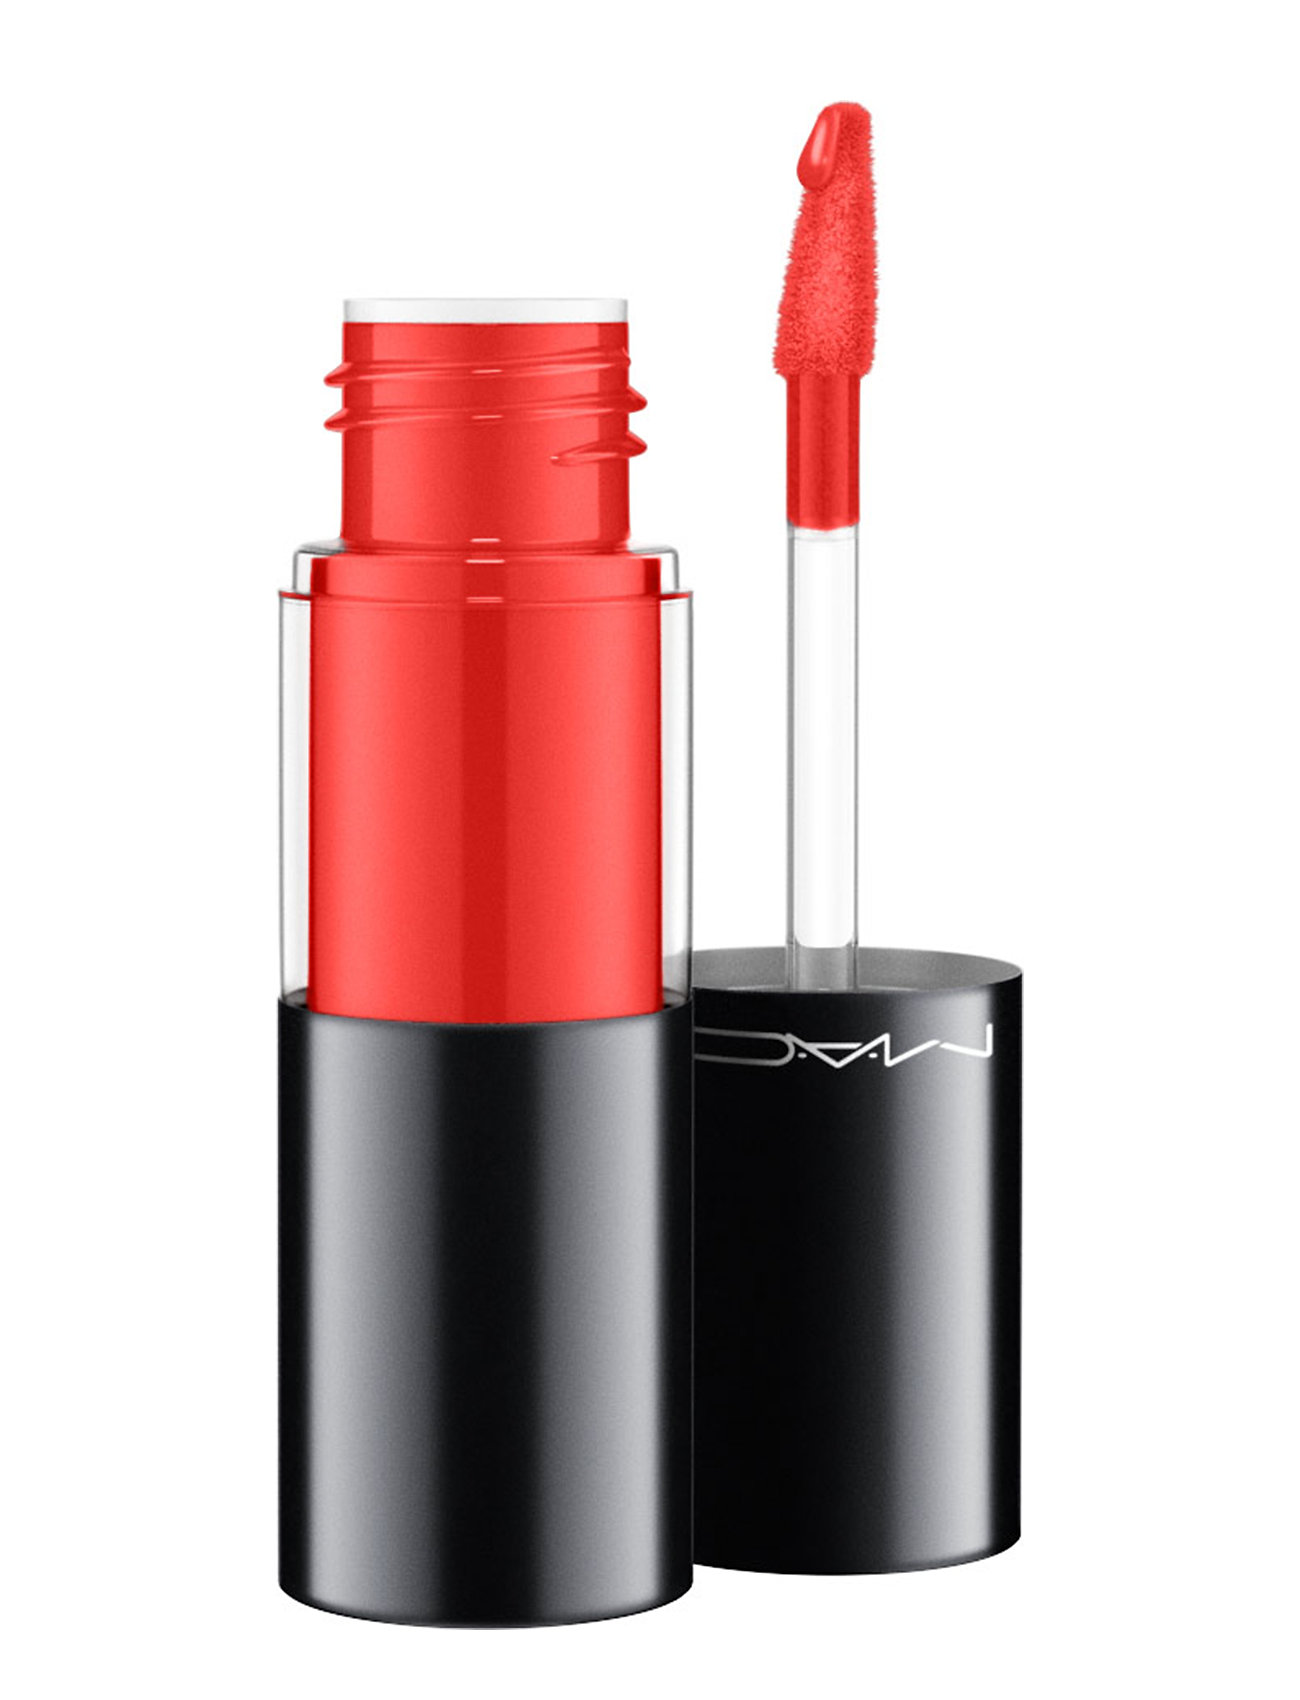 Image of Versicolour Varnish Varnishly Red Beauty WOMEN Makeup Lips Rød M.A.C. (3105942661)